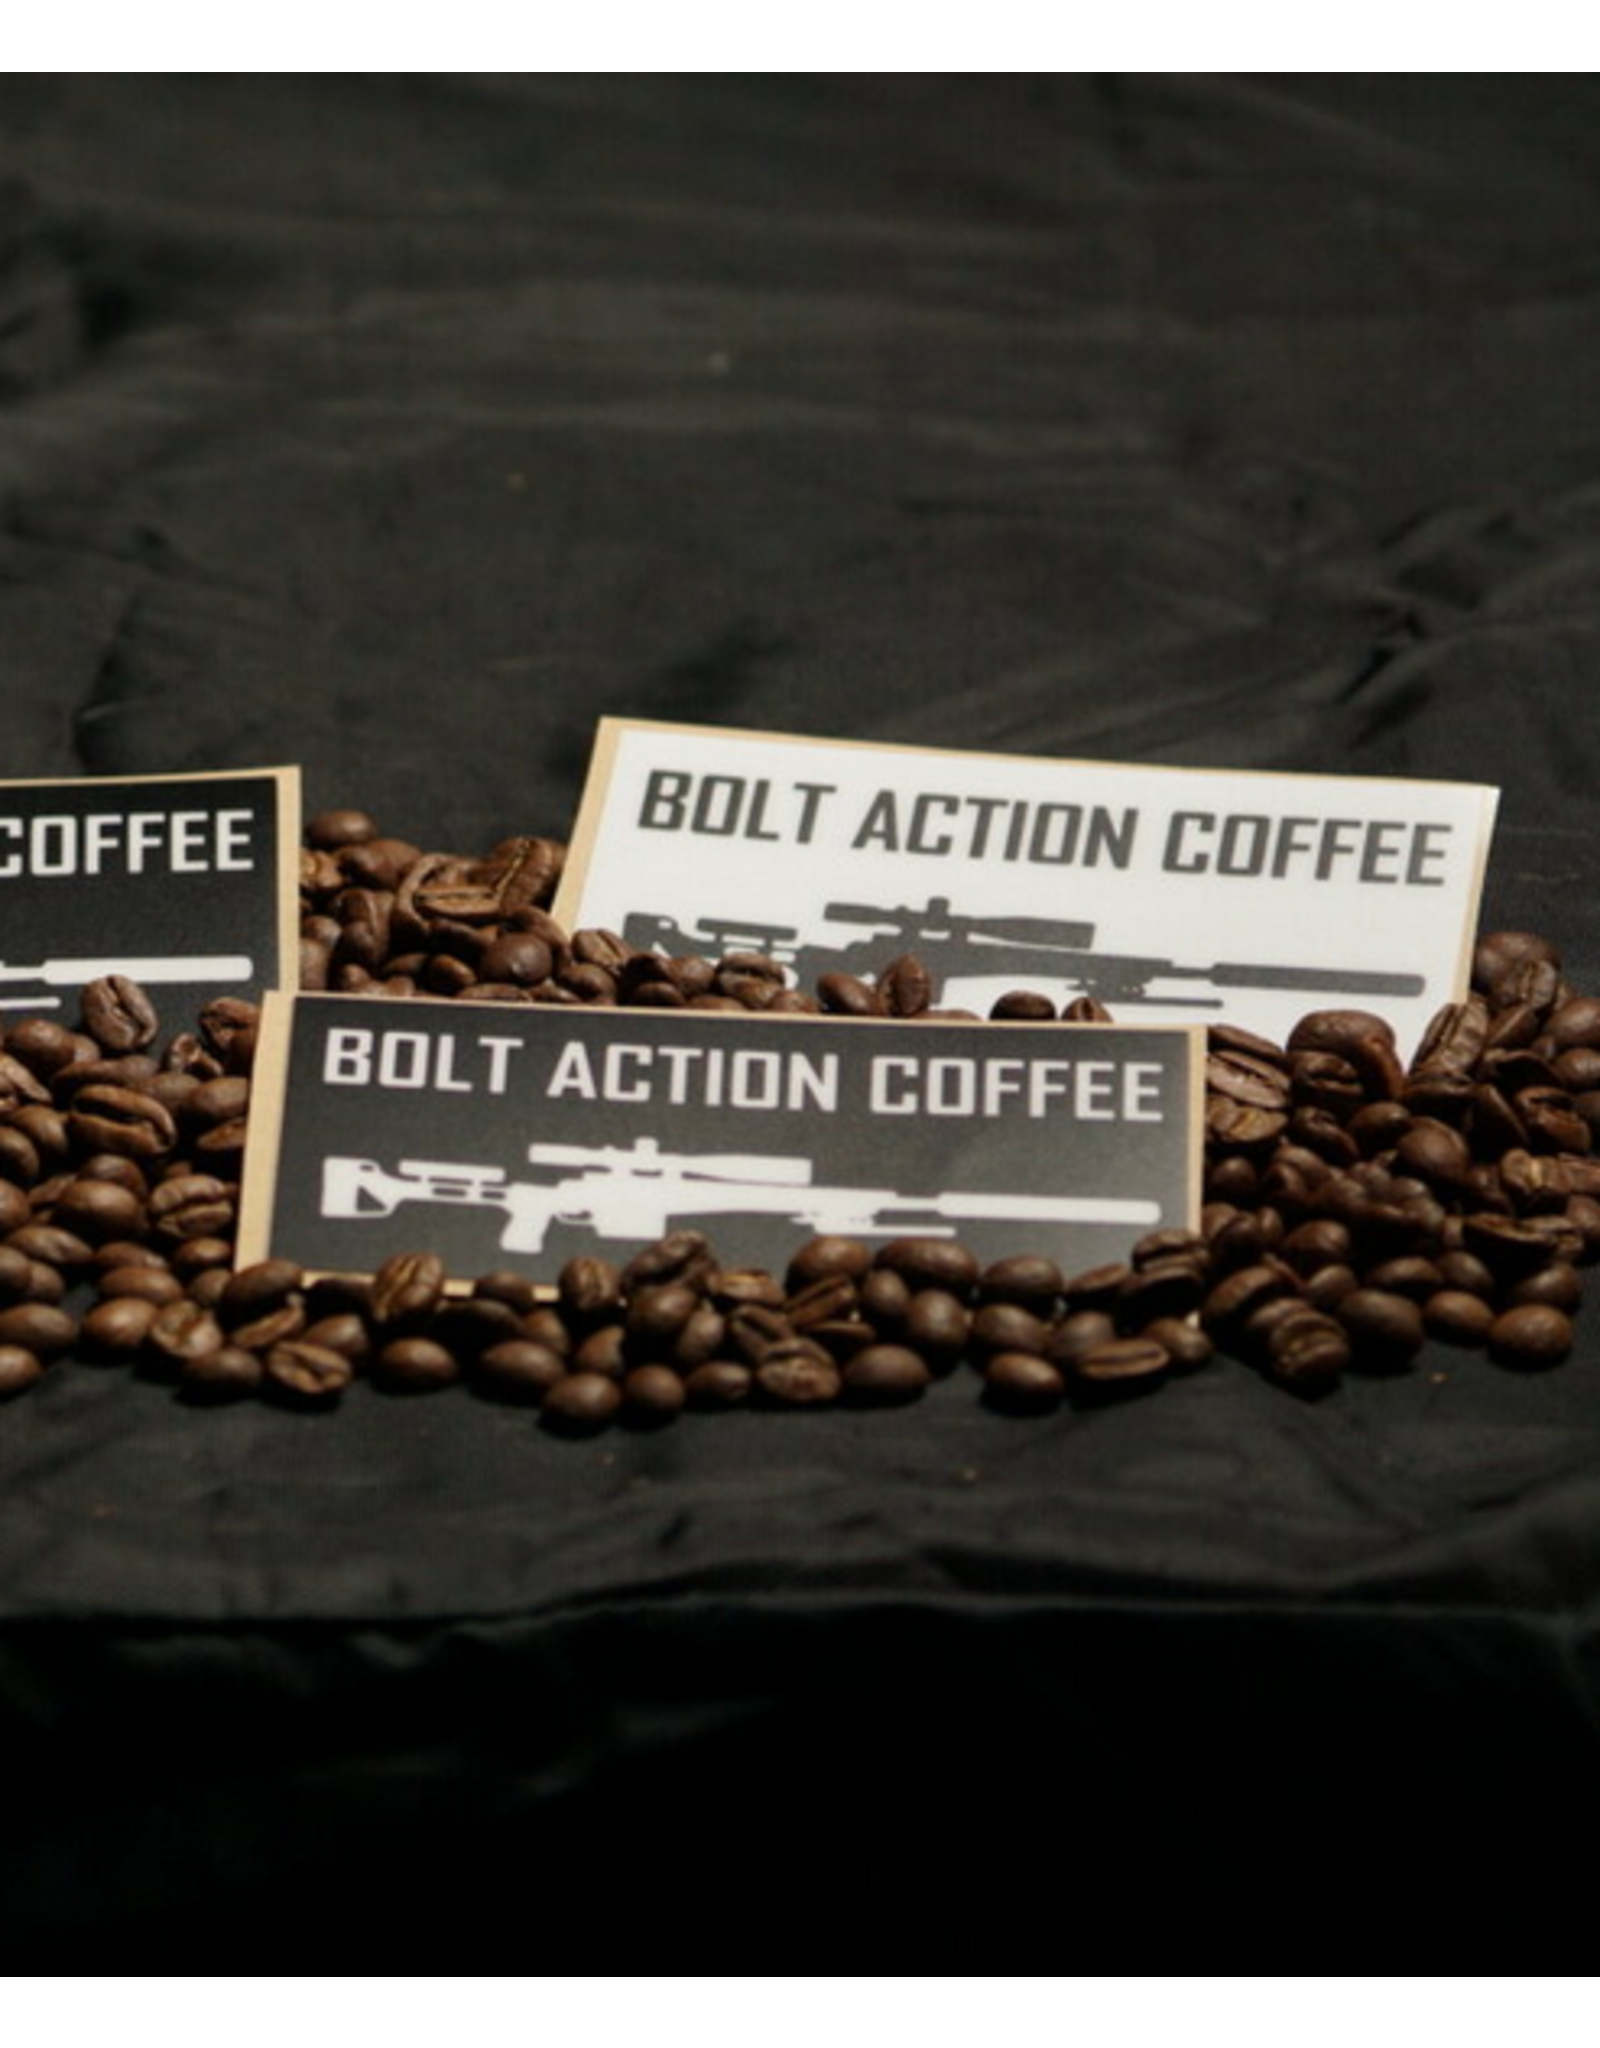 Bolt Action Coffee Bolt Action Coffee, All-Weather Logo Sticker Black